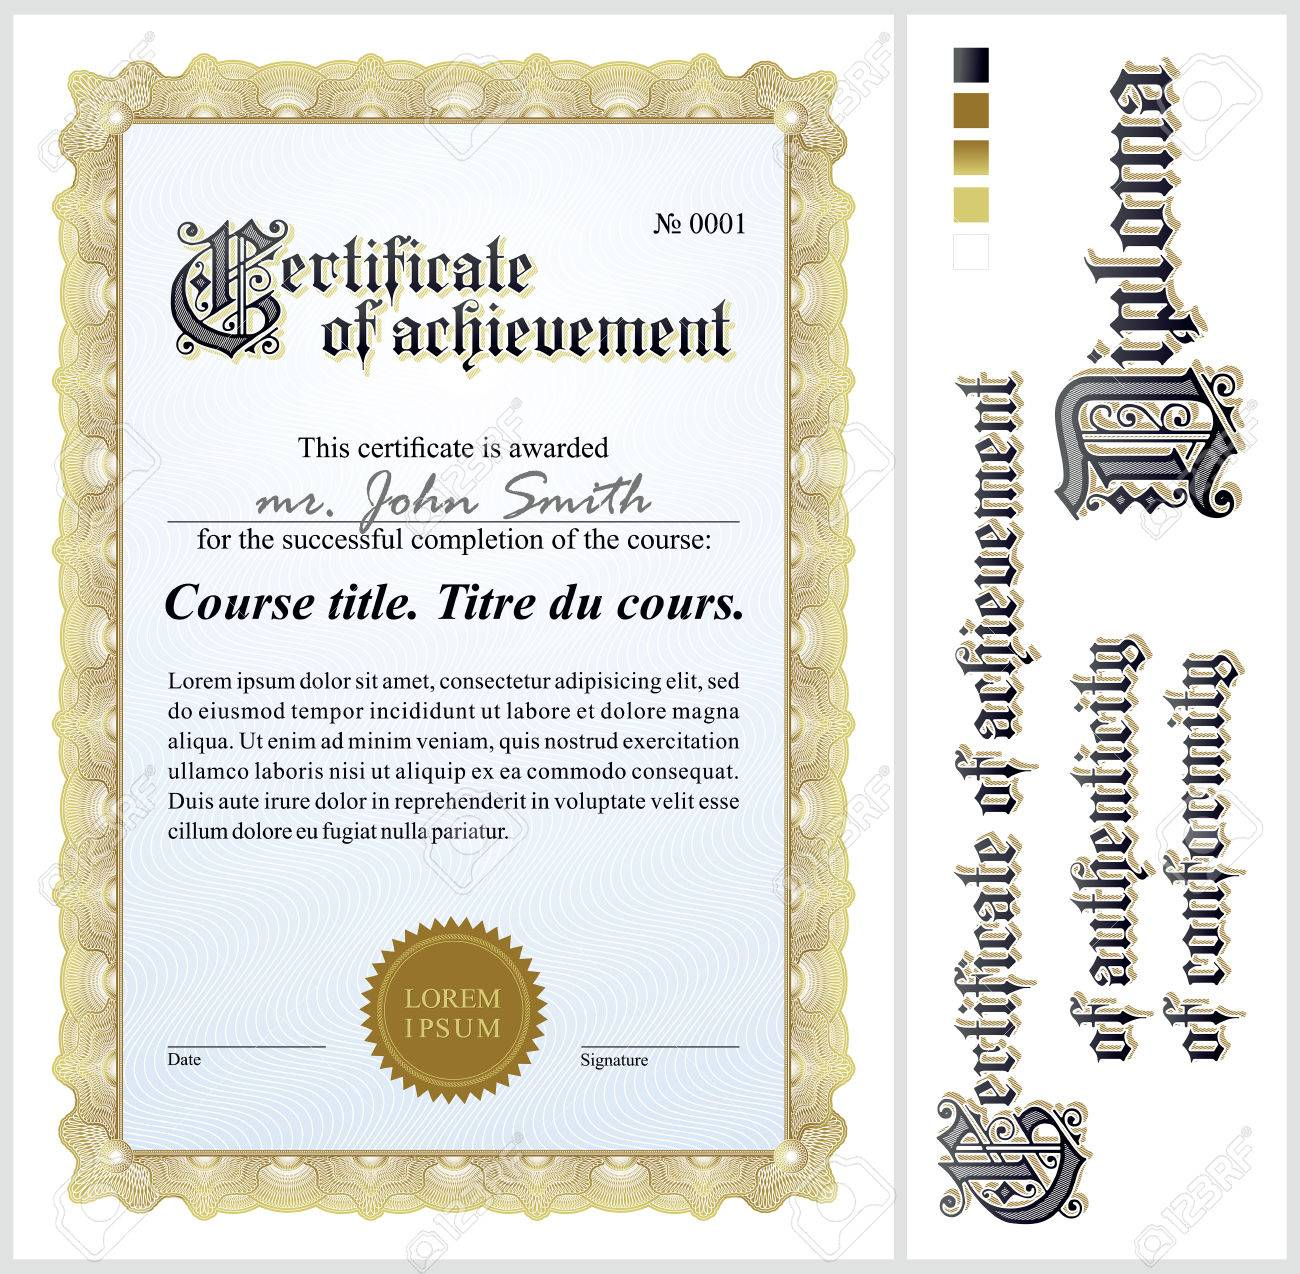 Gold certificate template vertical additional design elements gold certificate template vertical additional design elements stock vector 29378991 yelopaper Gallery